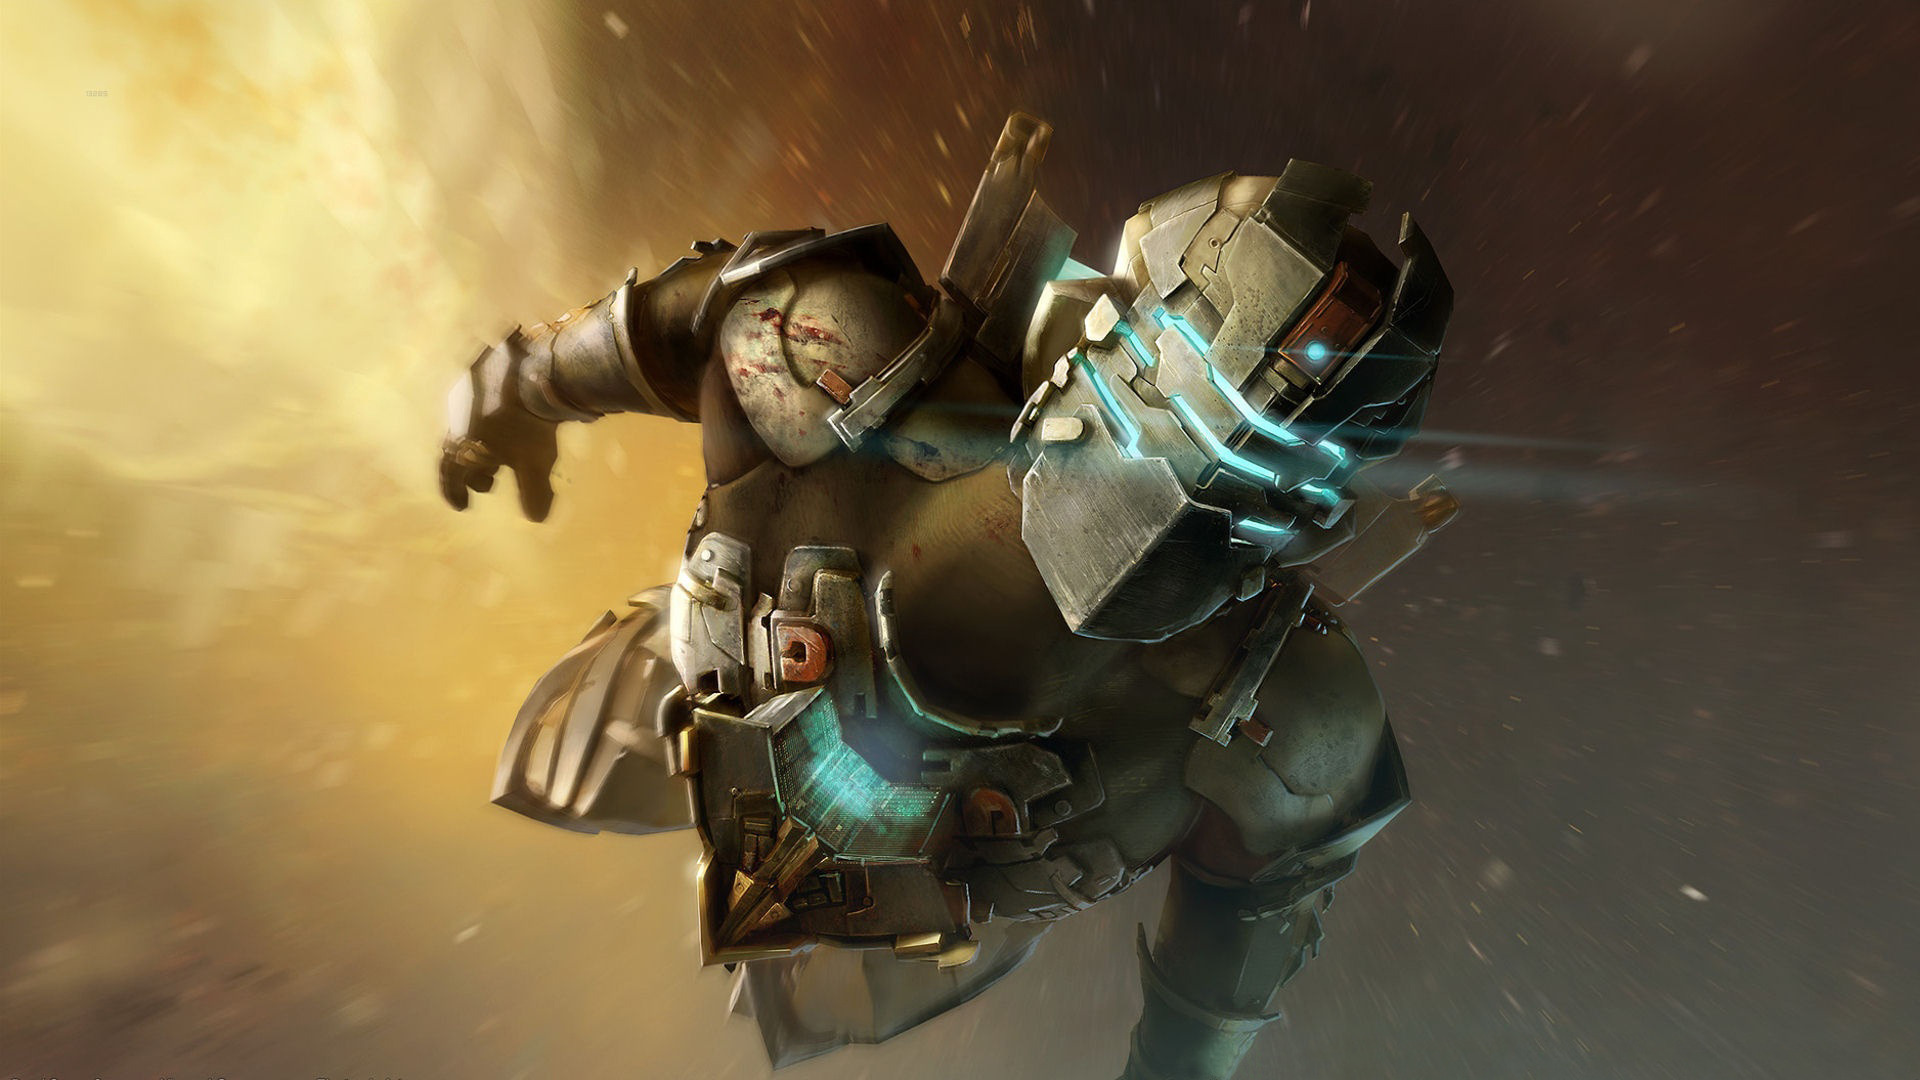 Dead Space 3 Wallpapers | HD Wallpapers